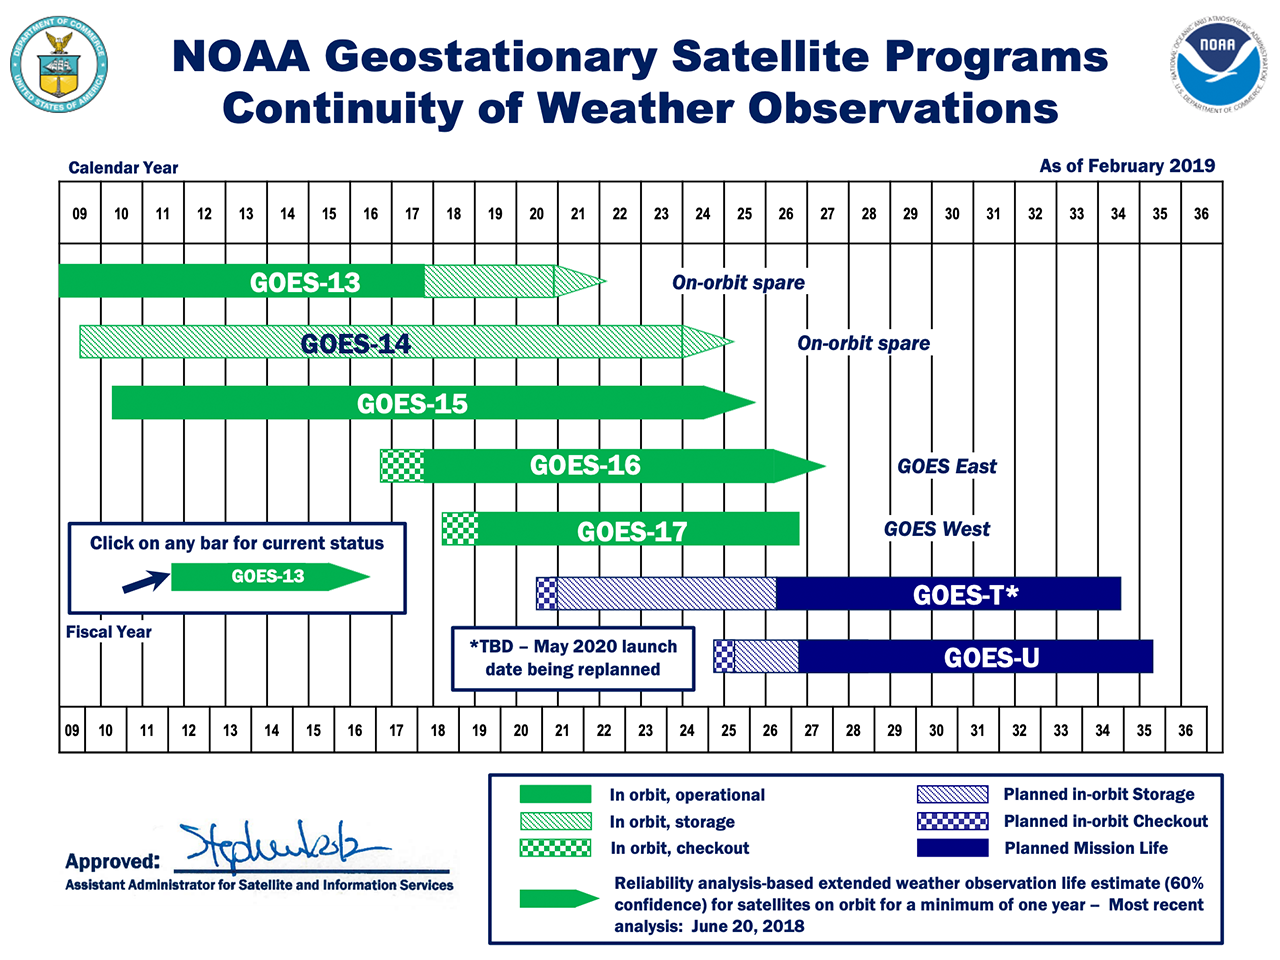 NOAA Geostationary Satellite Programs Continuity of Weather Observations